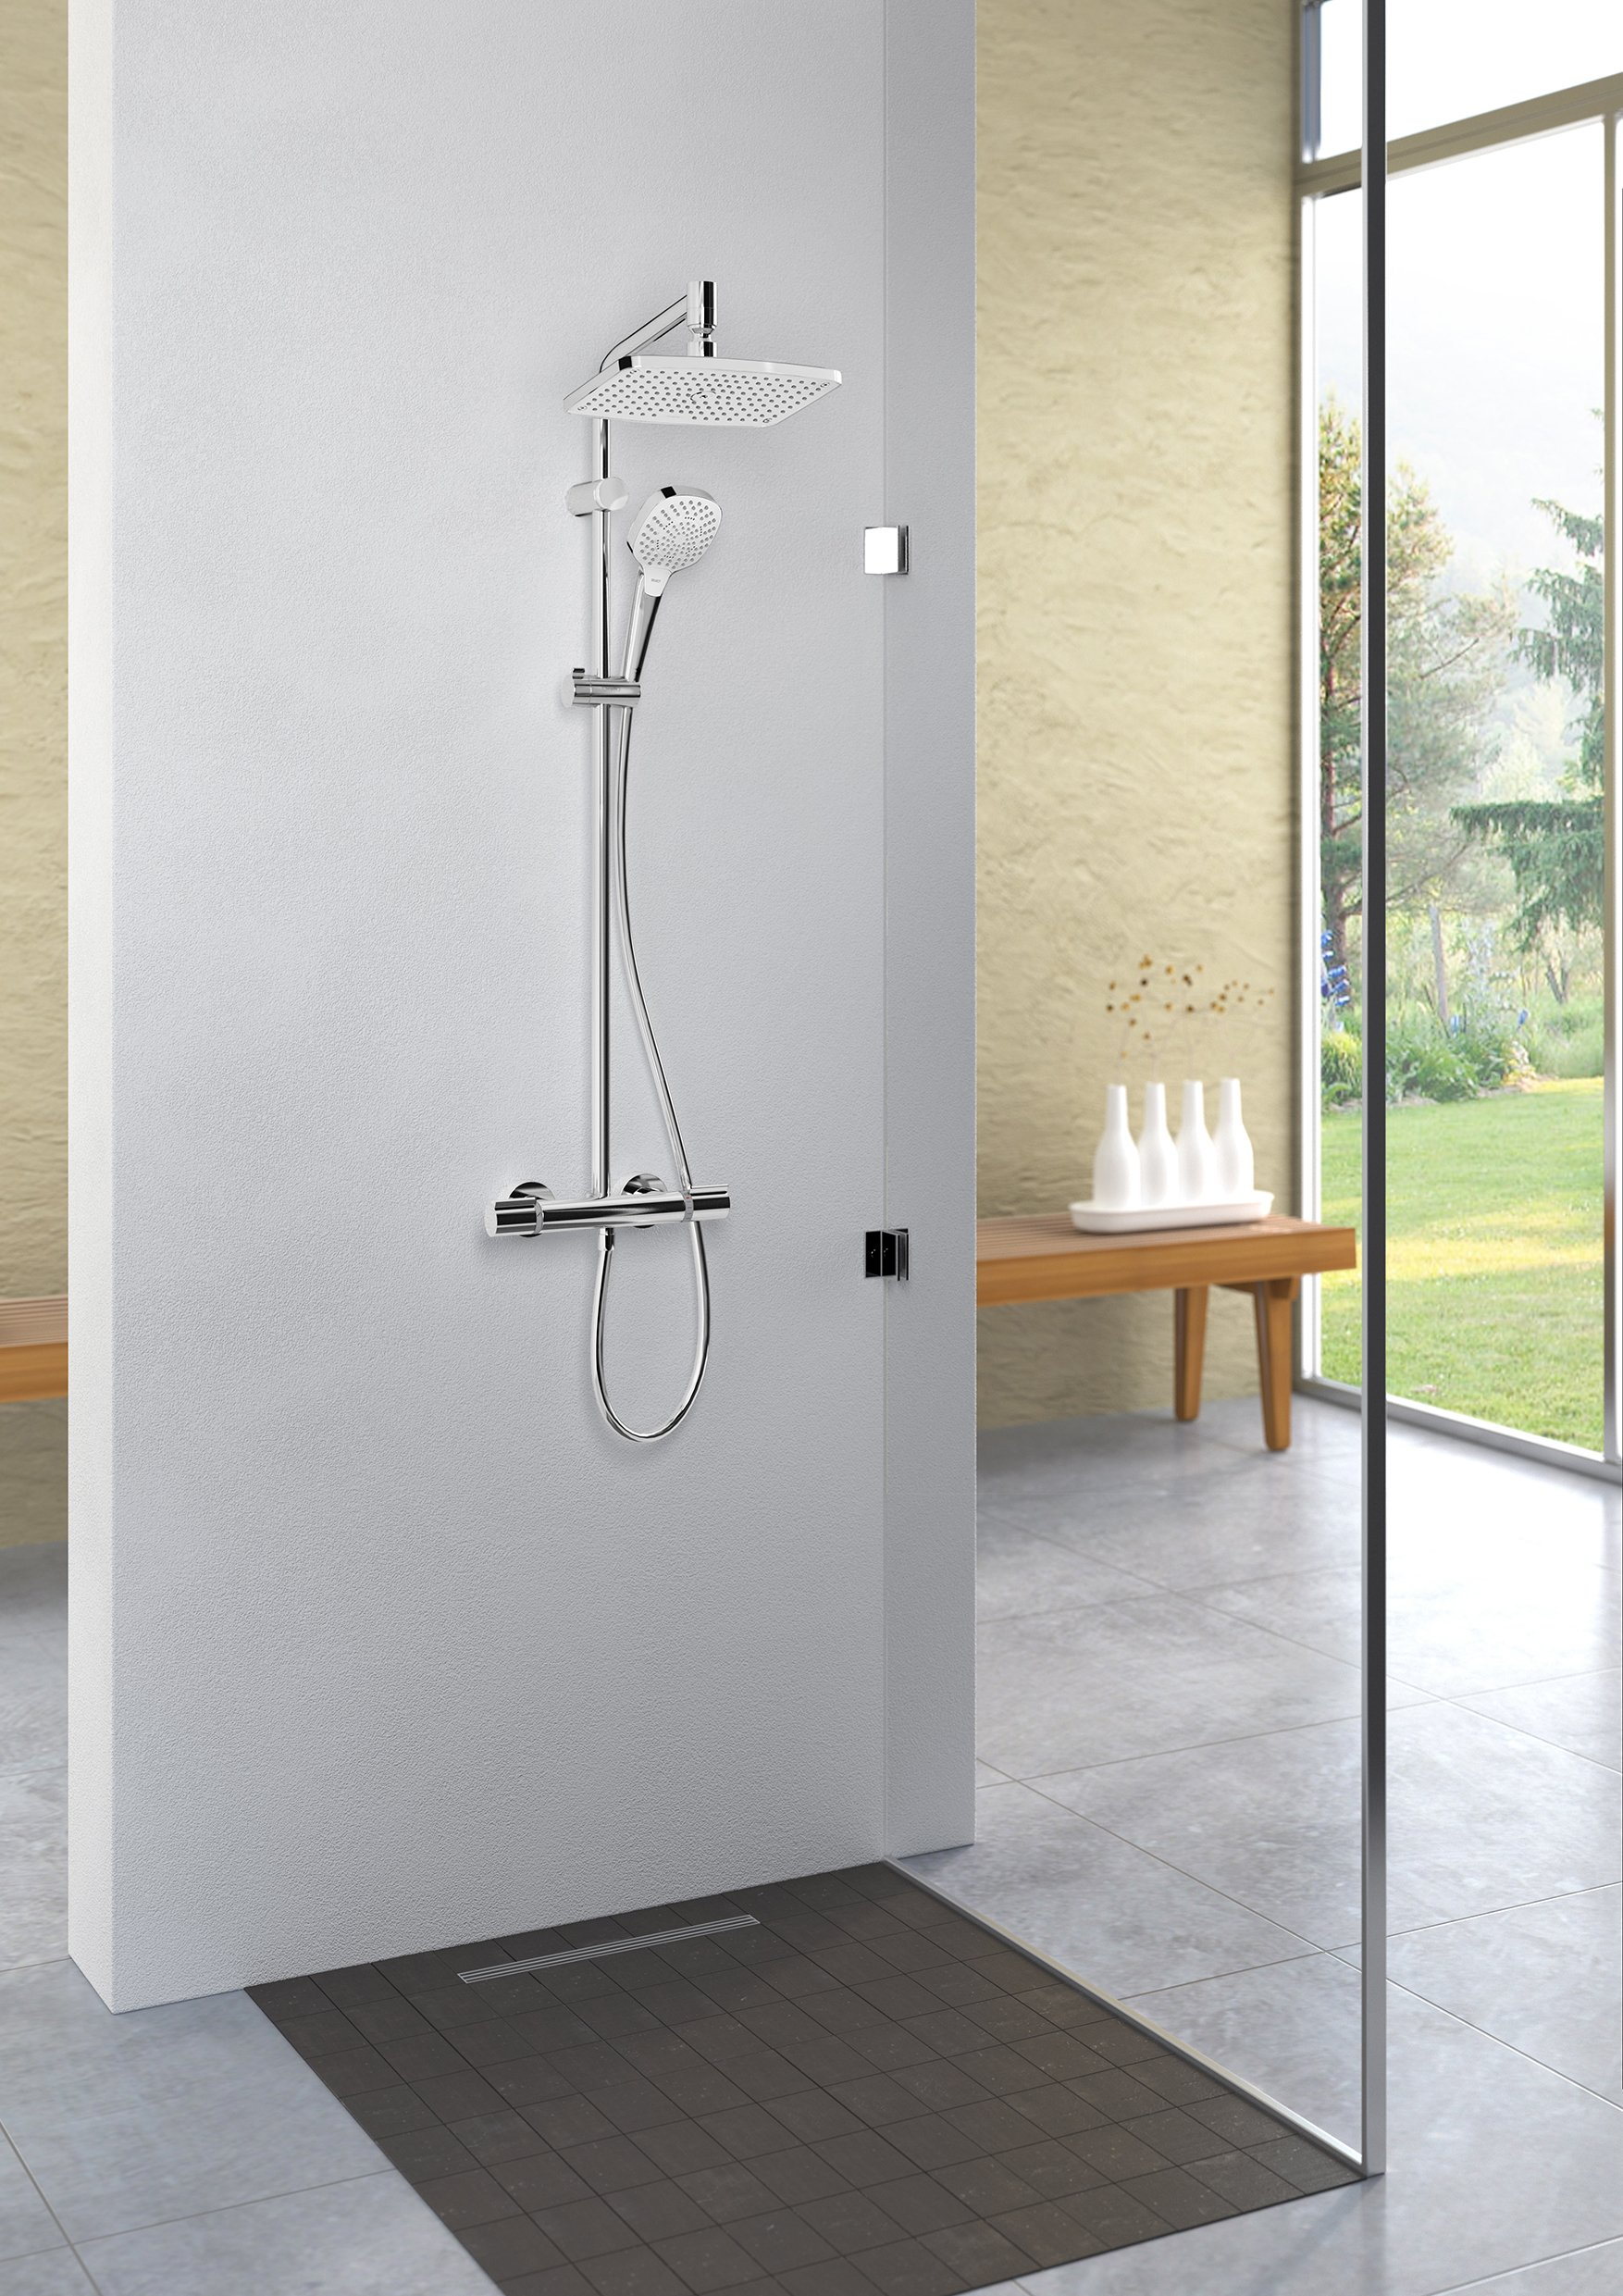 hansgrohe colonne de douche showerpipe myselect inspid co. Black Bedroom Furniture Sets. Home Design Ideas